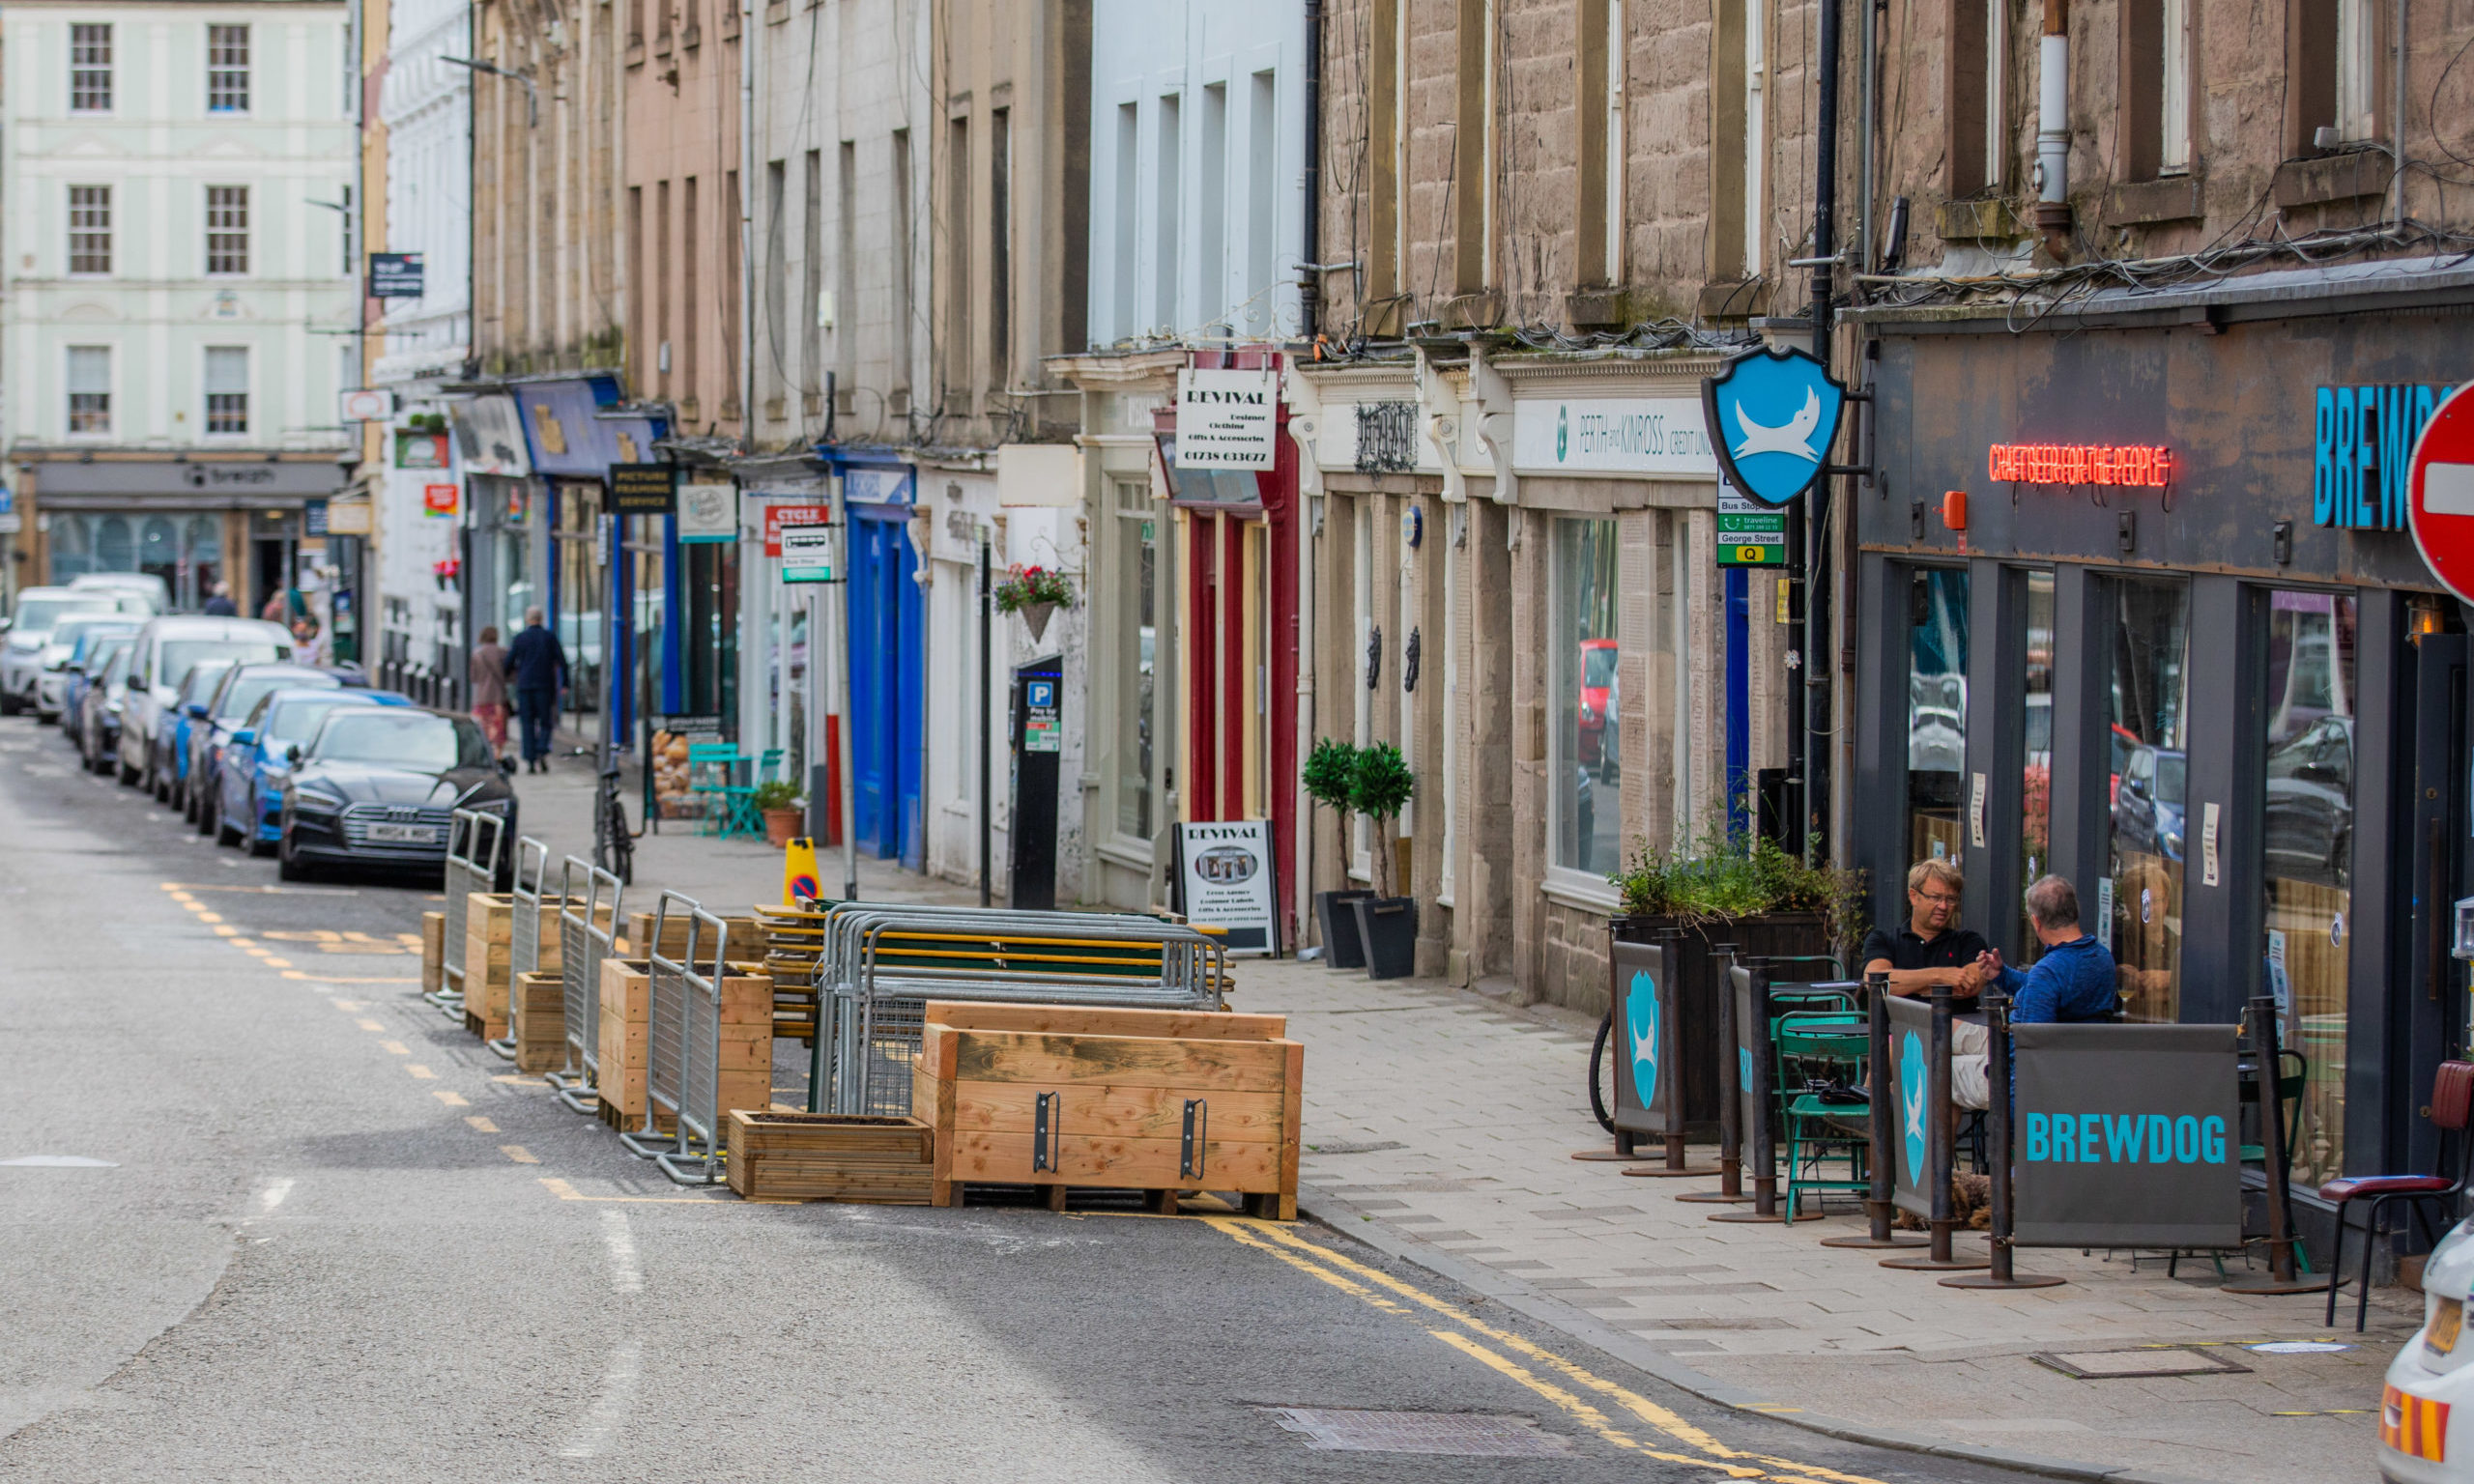 The parklet being set up outside BrewDog on George Street in Perth